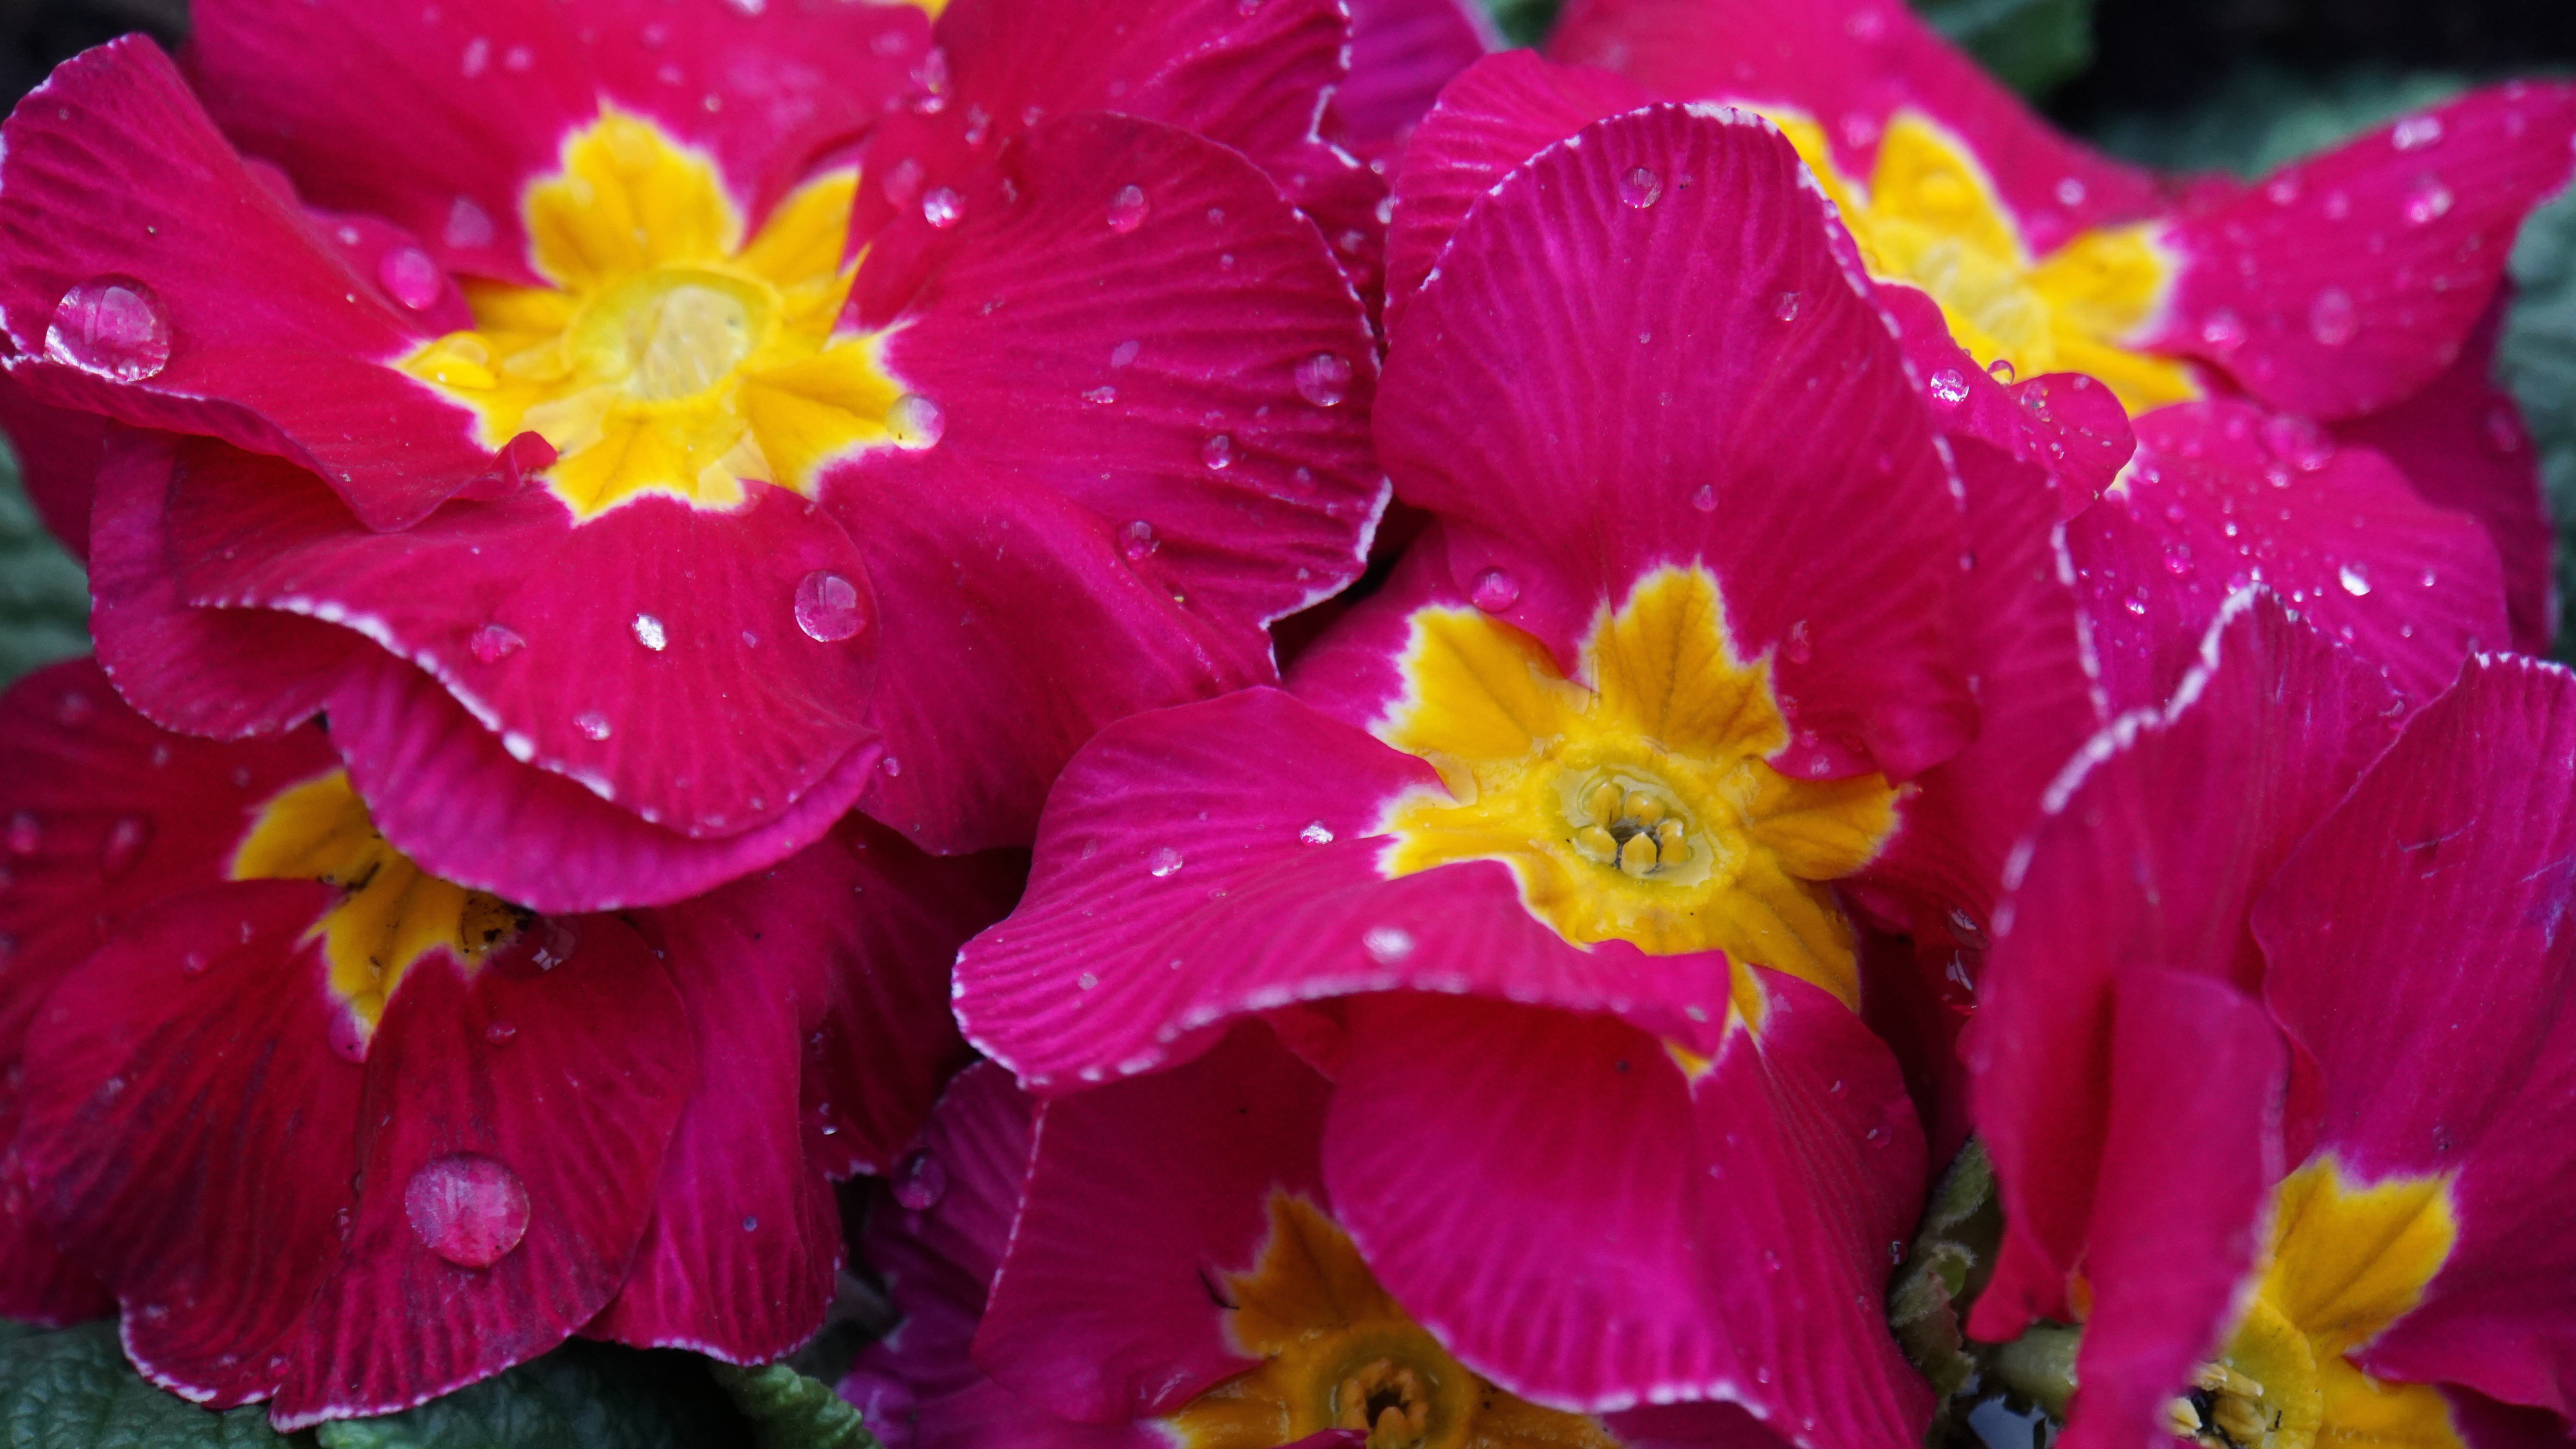 flowers, spring flowers, wet, drop of water, plant, nature, pink,